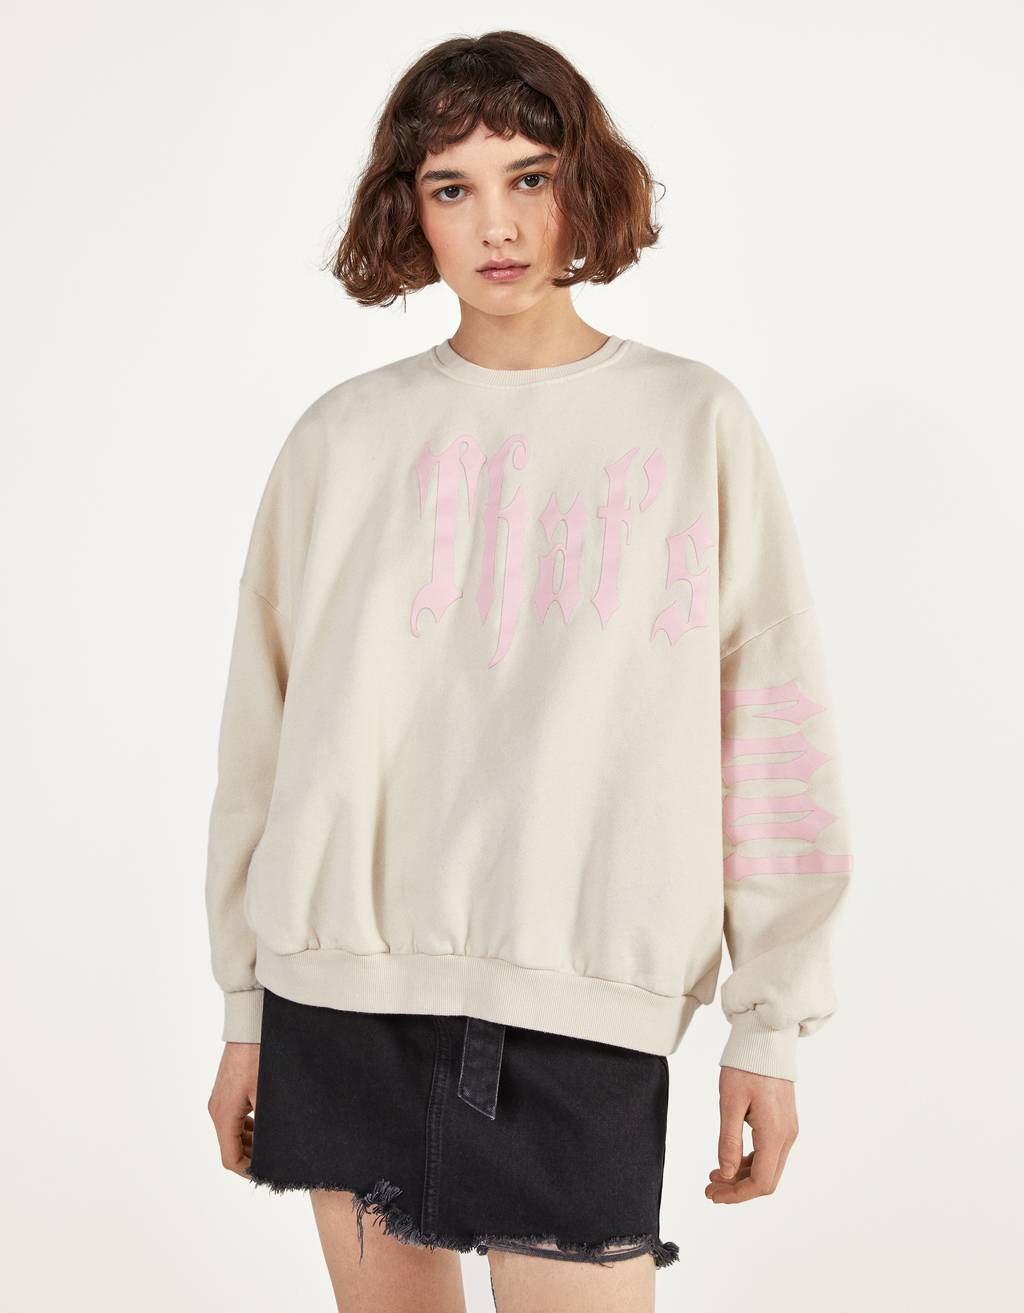 Full sleeve sweatshirt with print